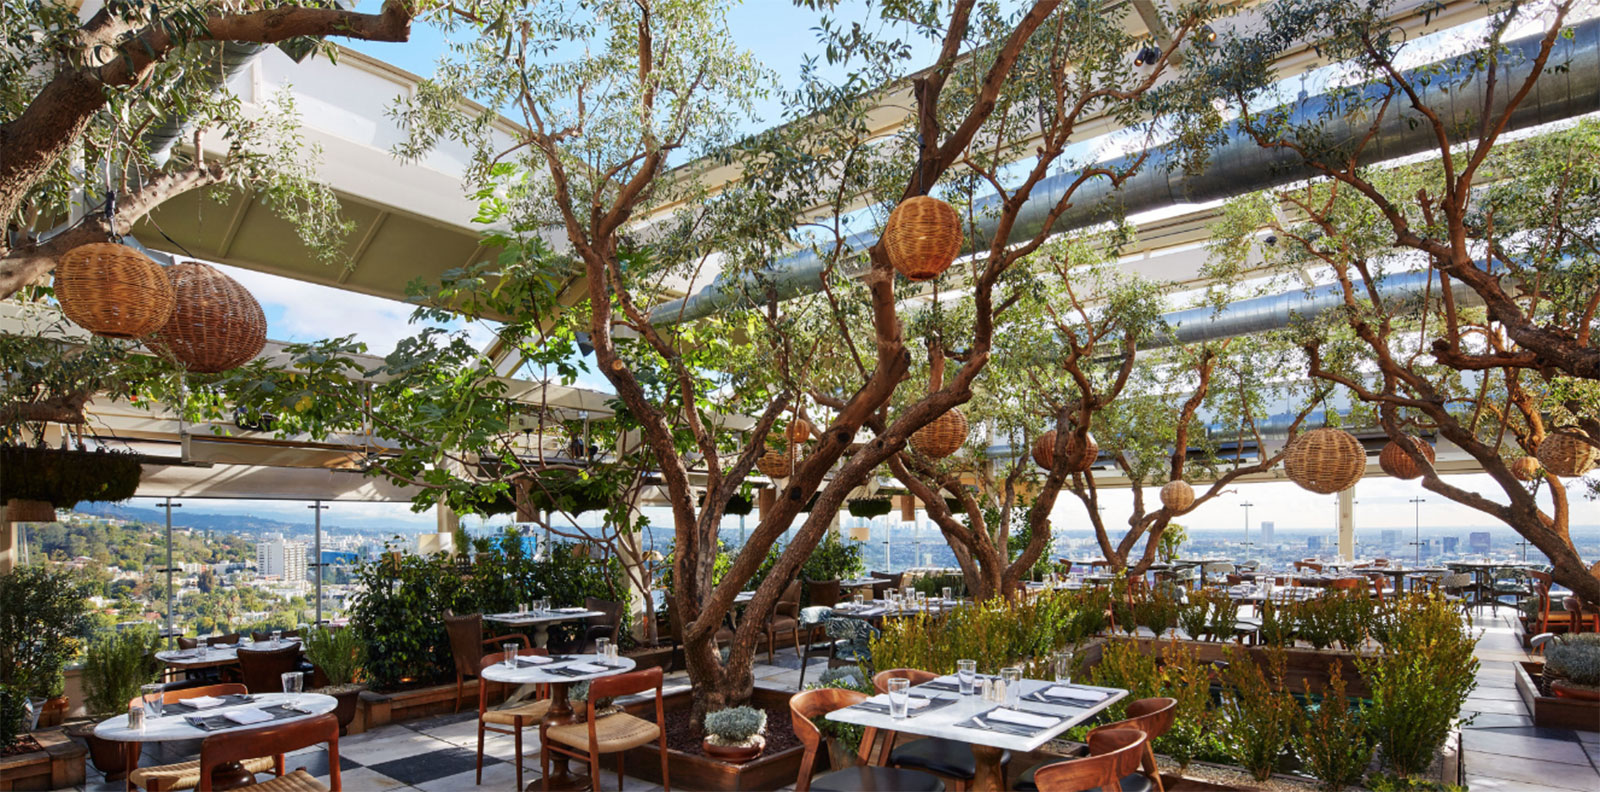 Soho_House_The_Ink_Collective_Pret-a-Partir_Los_Angeles_5.jpg